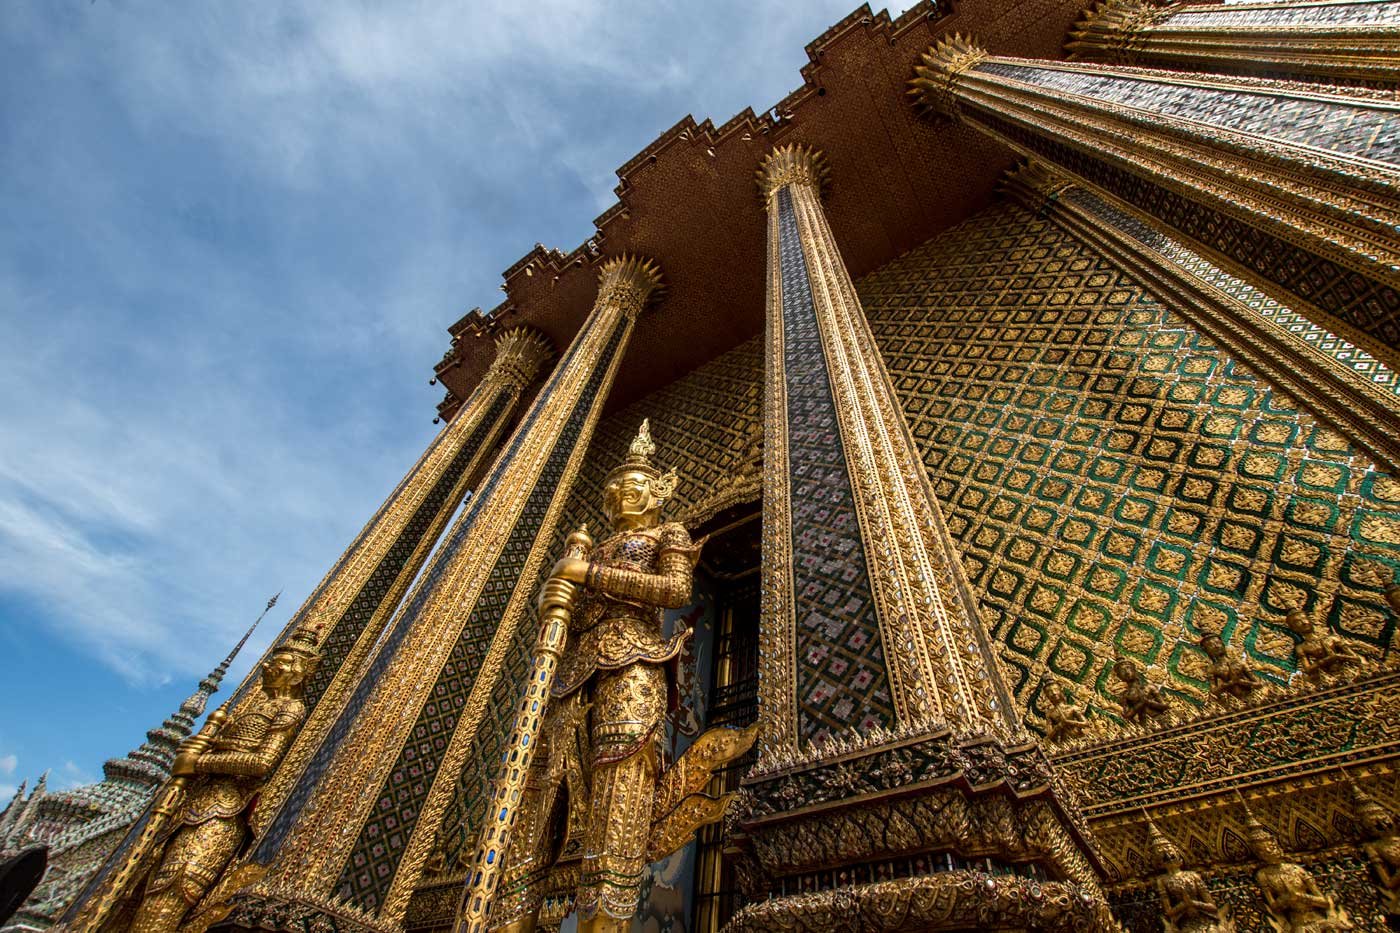 bangkok facts - temple guardians